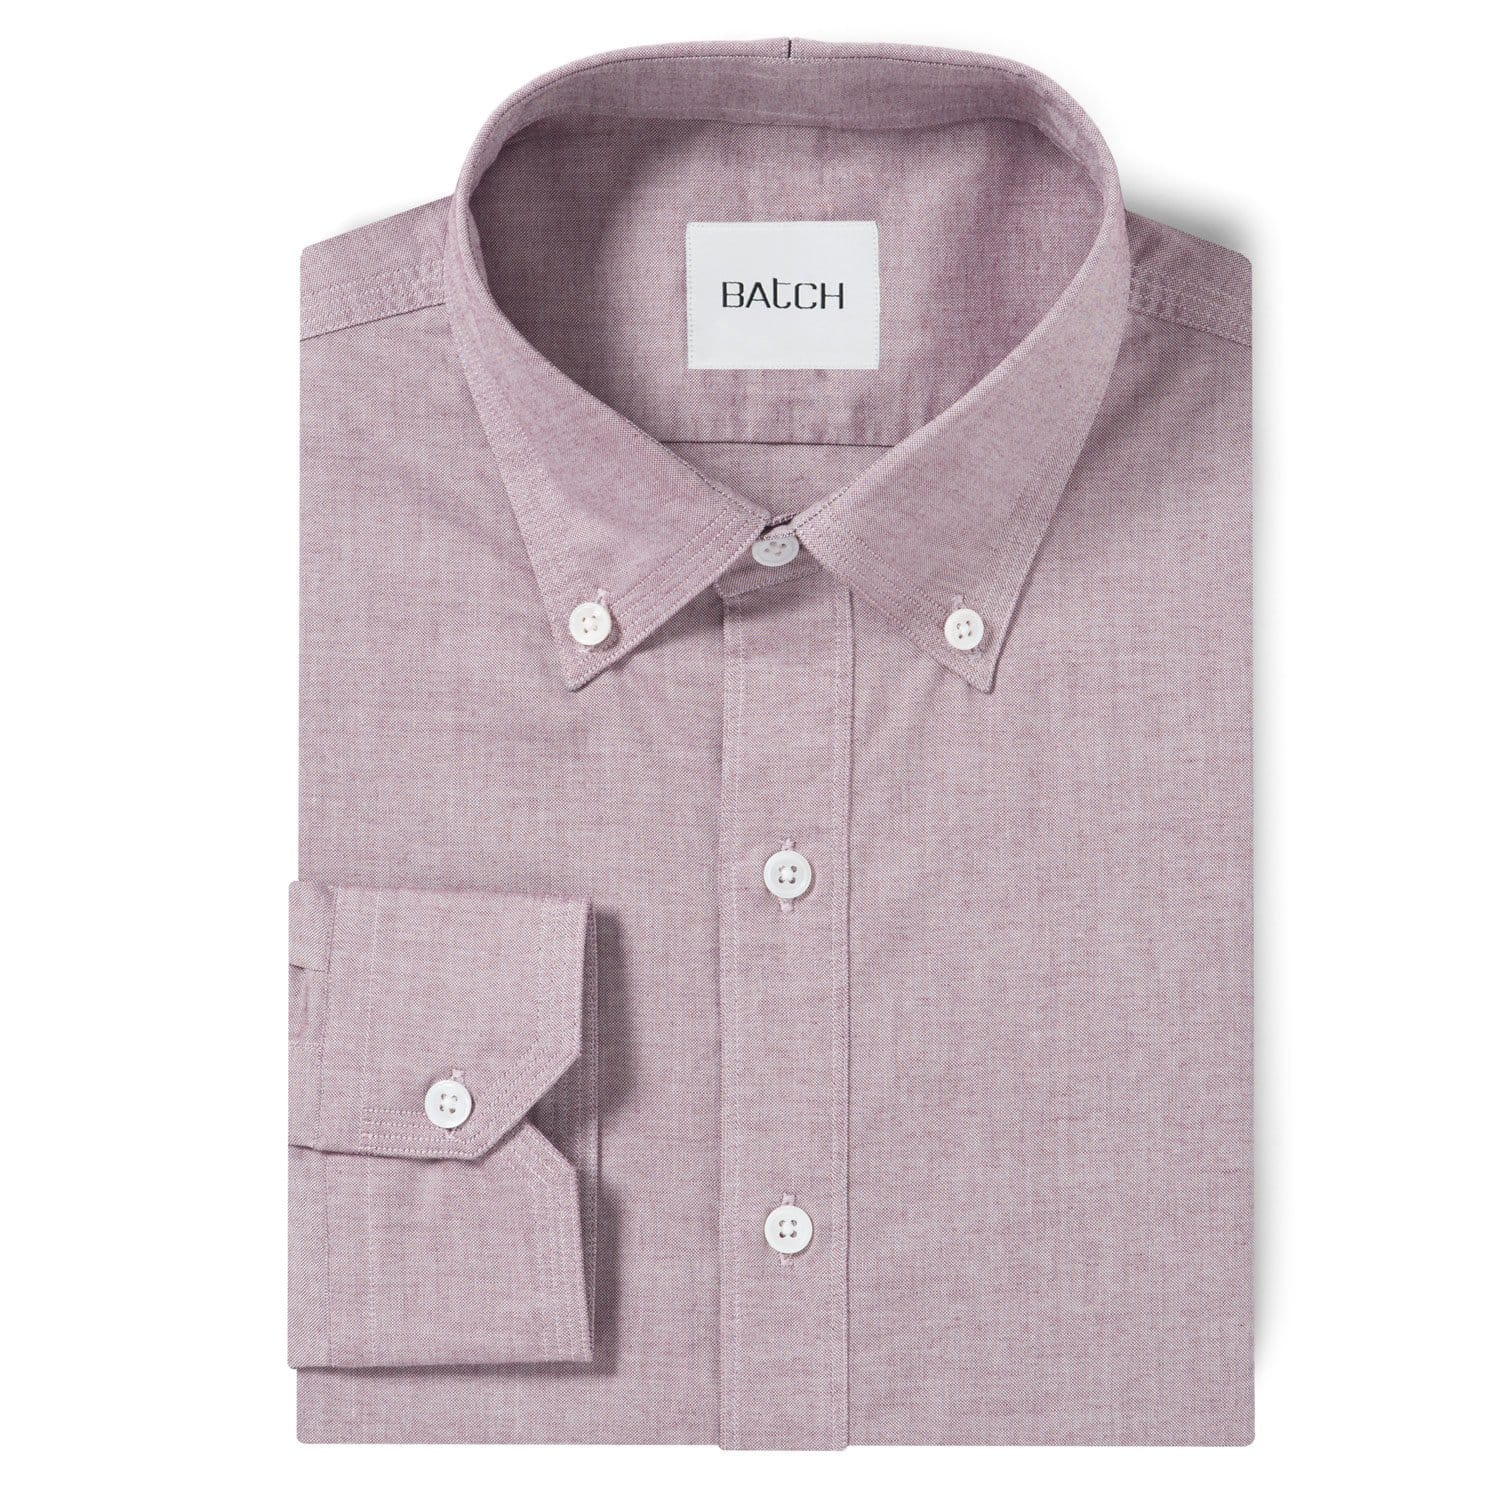 Cocktail Attire Shirts for Men